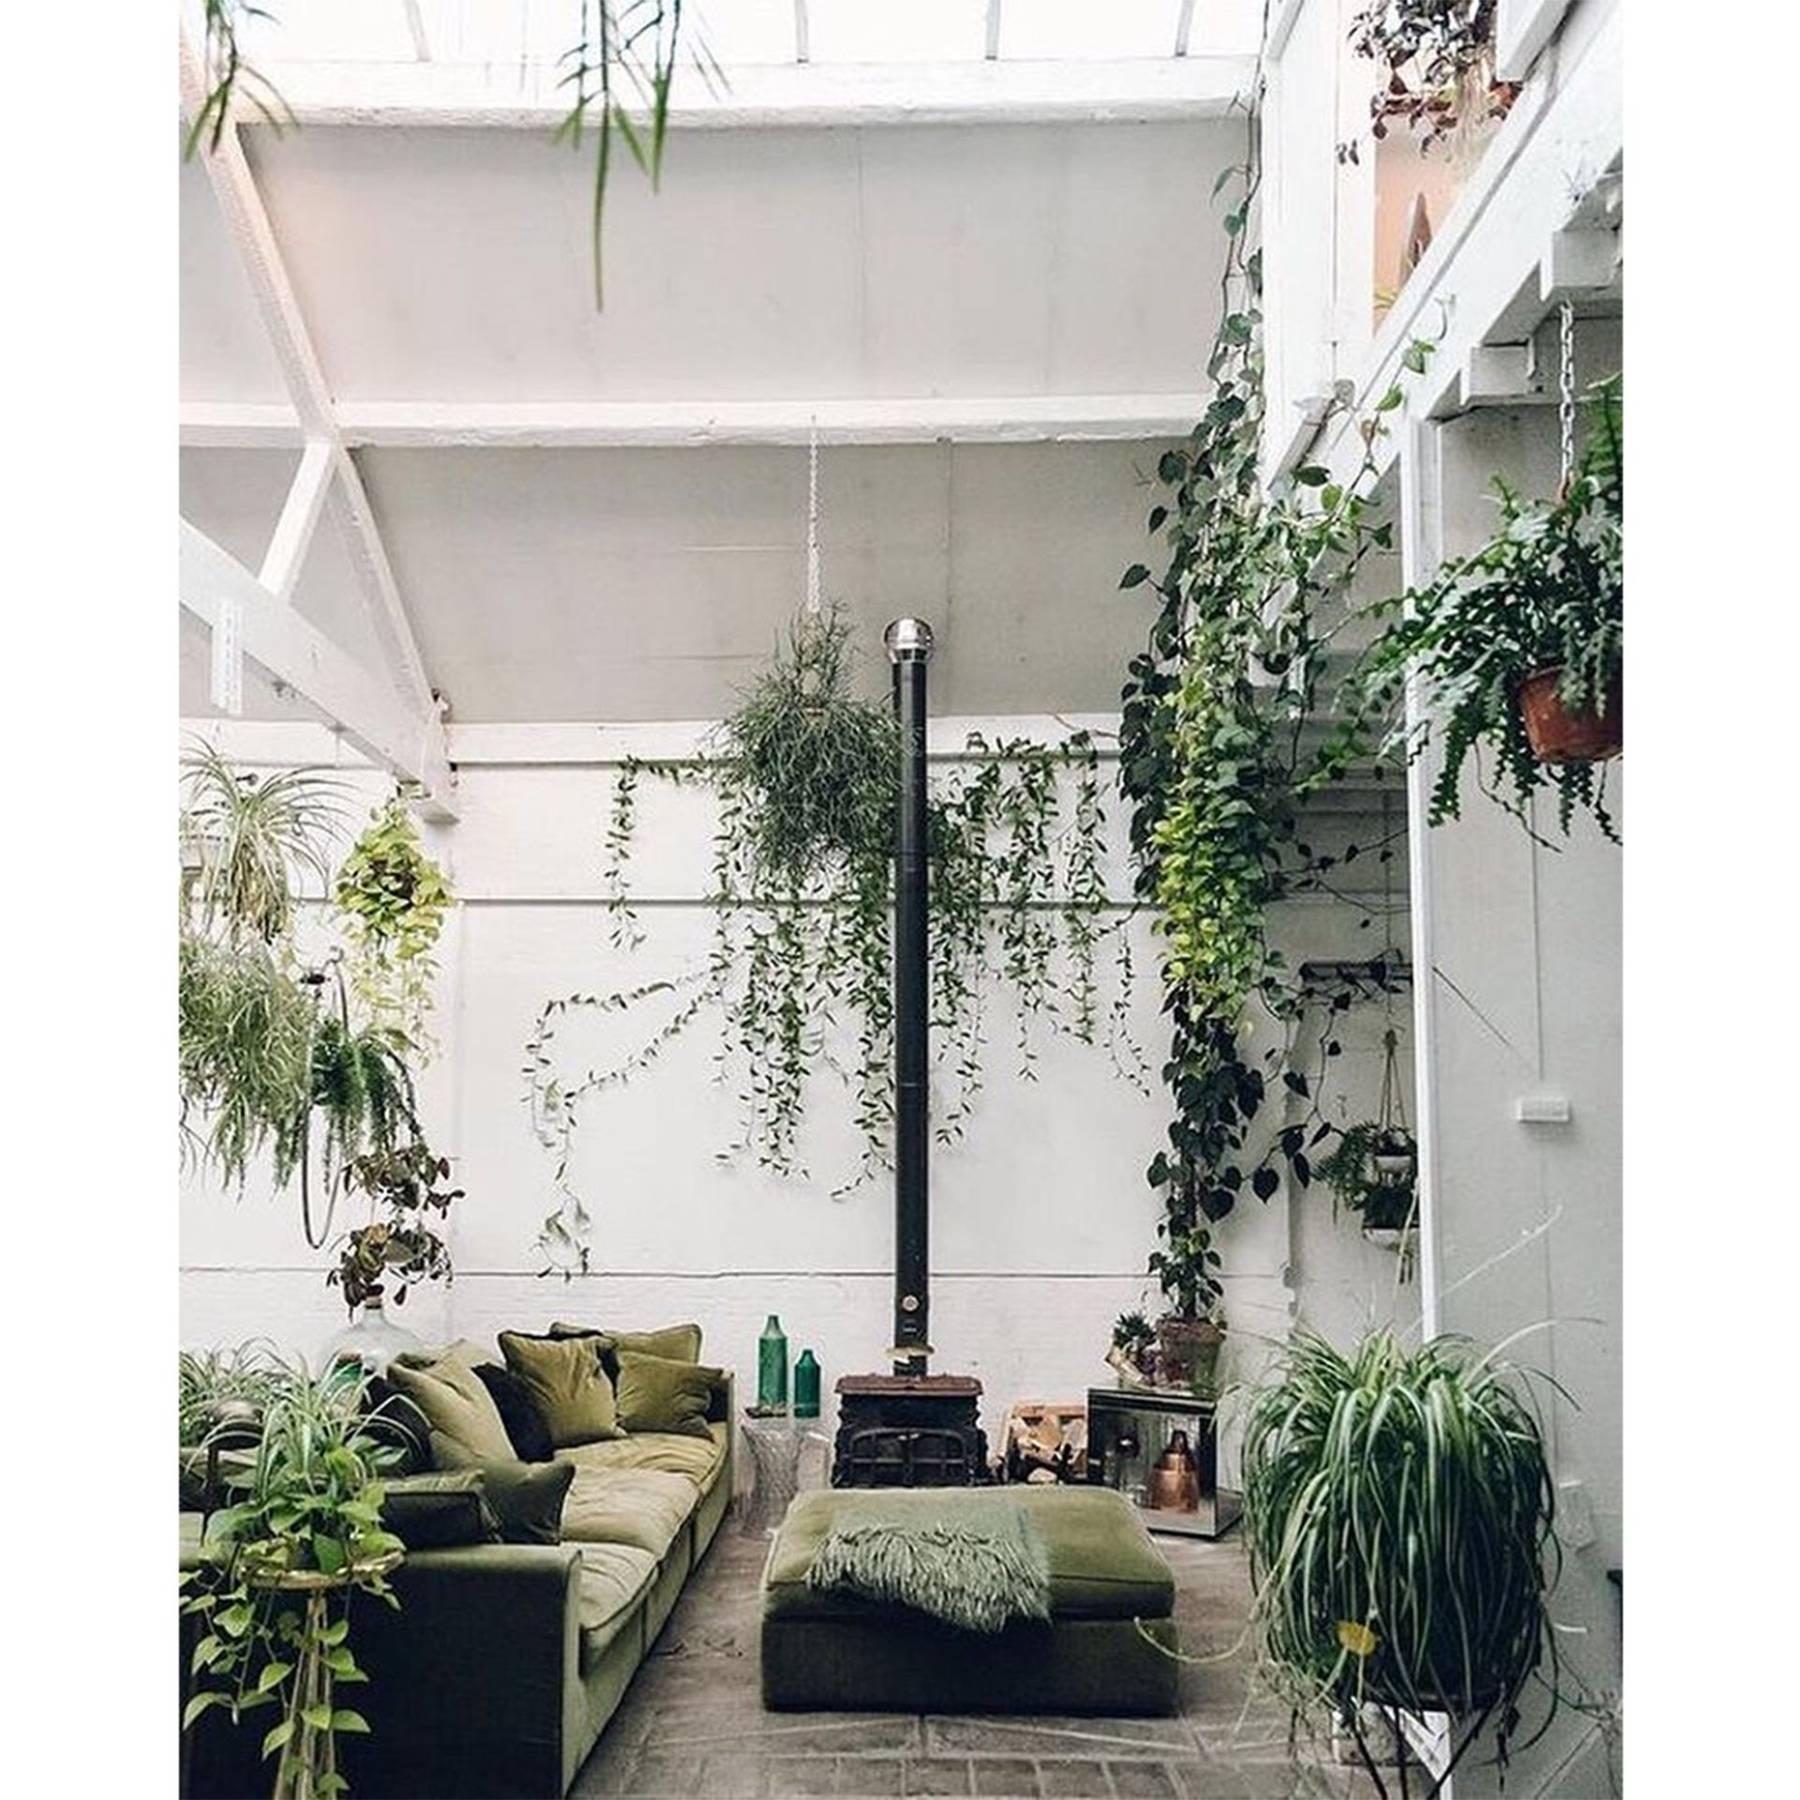 Best interior instagram accounts to follow now british vogue